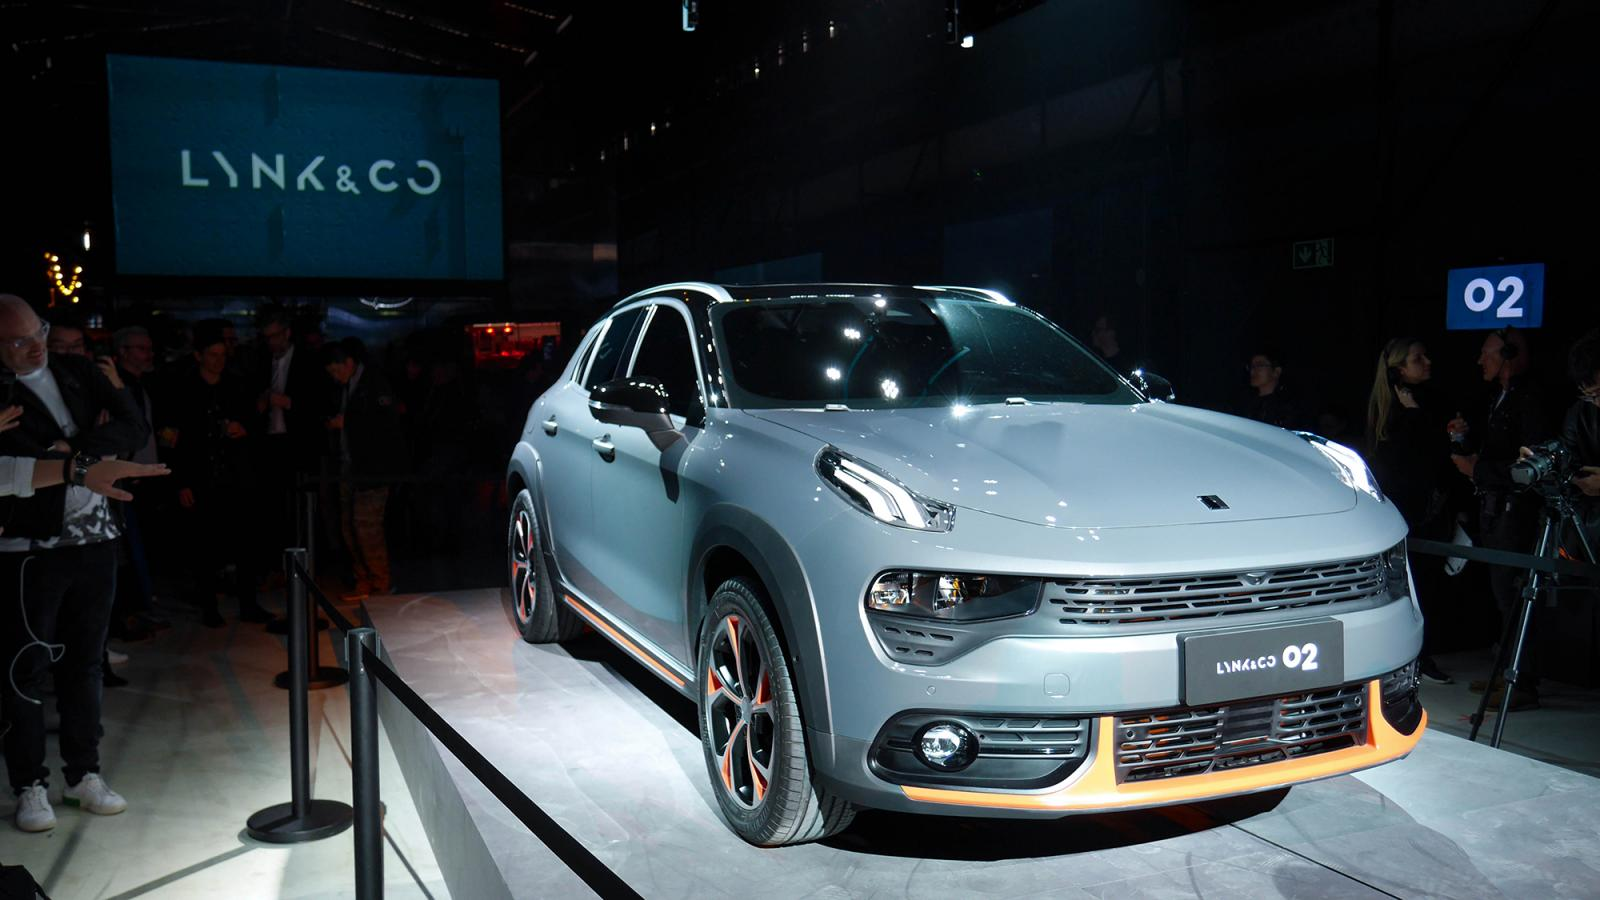 The new LYNK & CO 02 Crossover SUV: Changing mobility forever